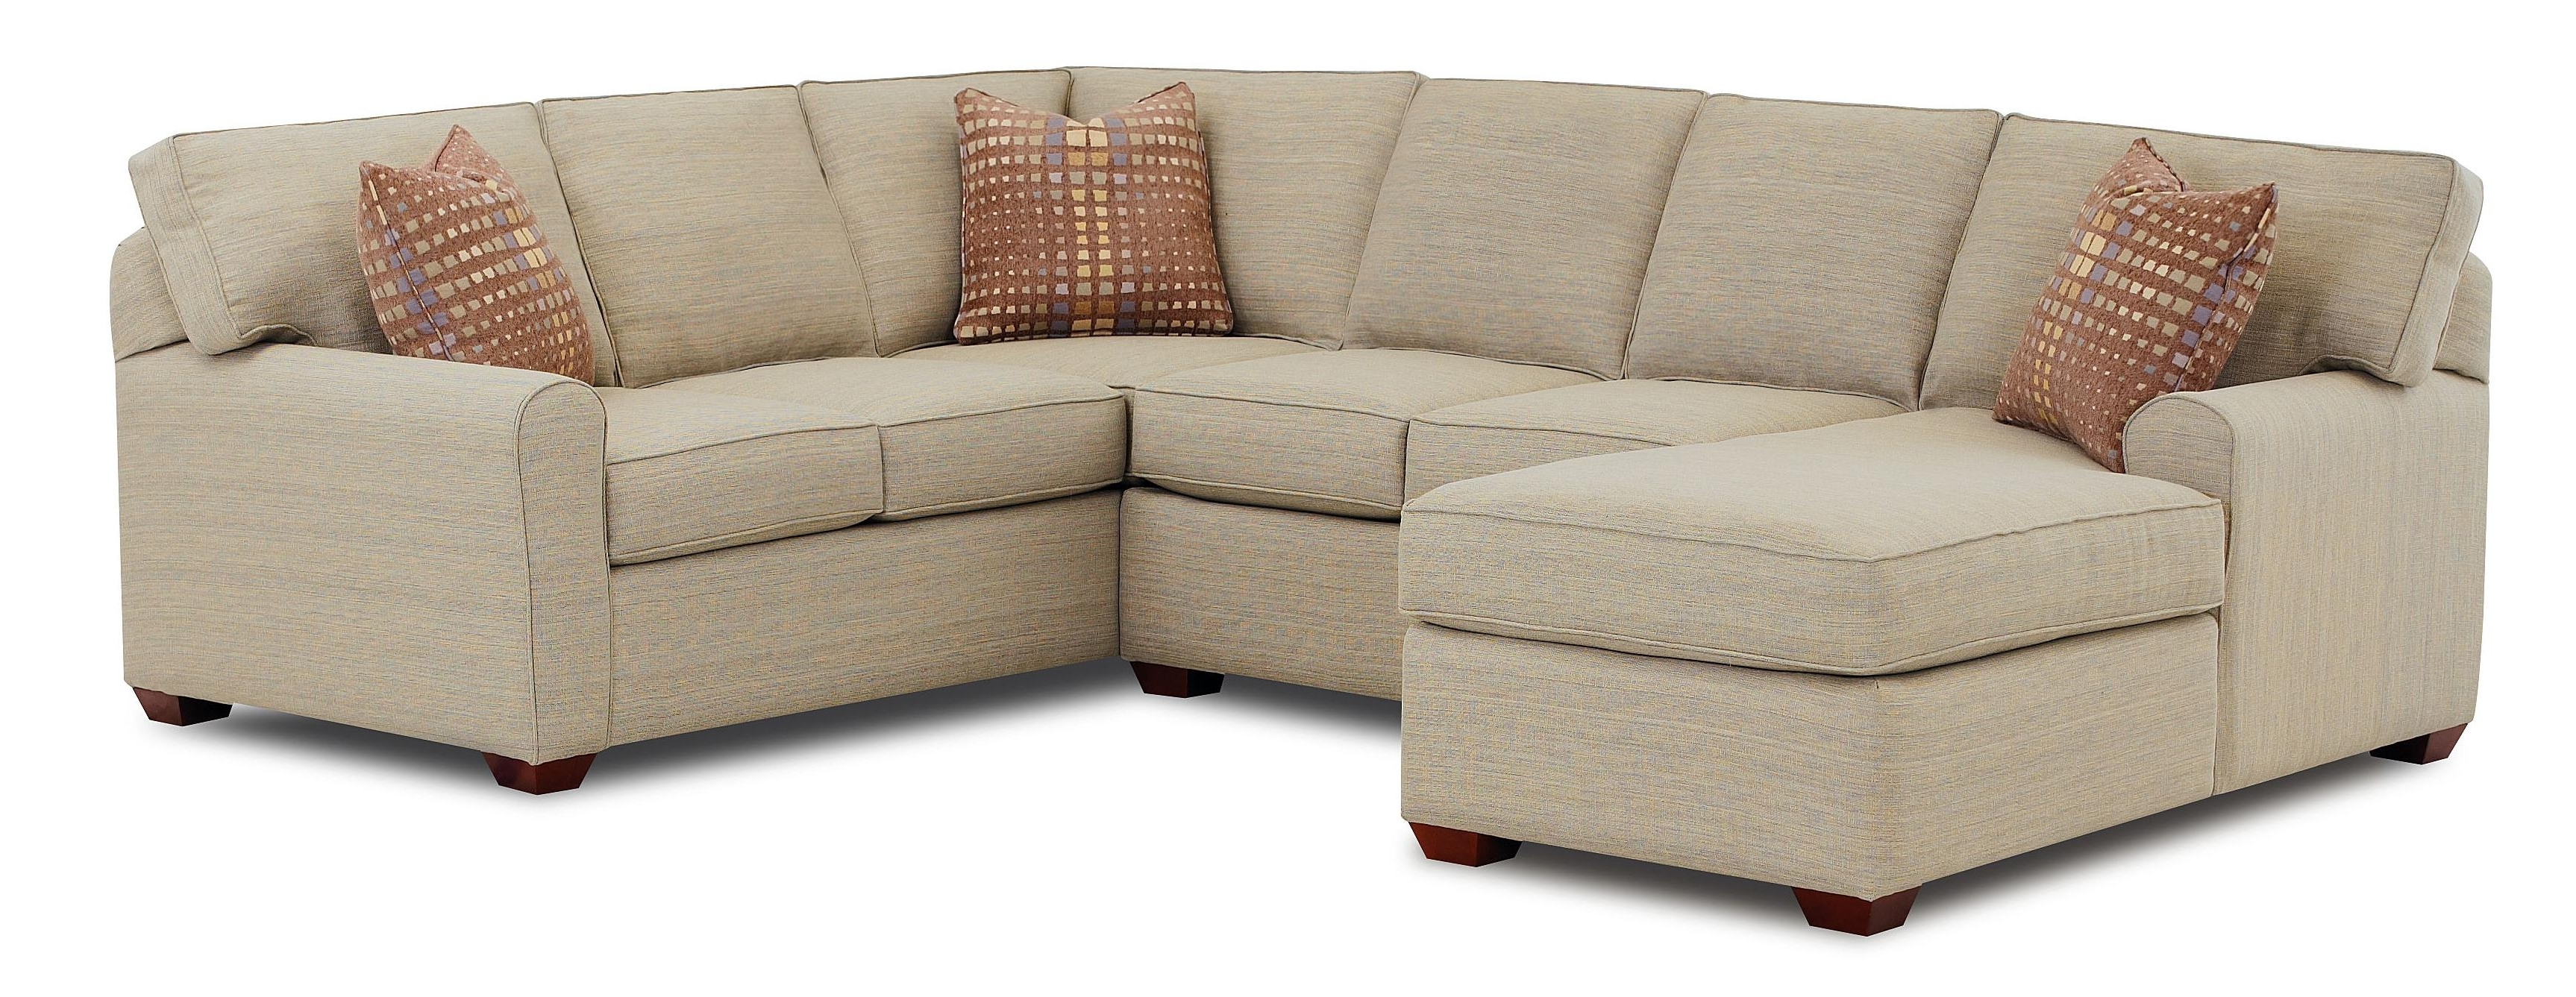 Well Known Chaise Lounge Couches With Regard To Inspirational Sectional Sofa With Chaise Lounge 66 Sofa Design (View 2 of 15)